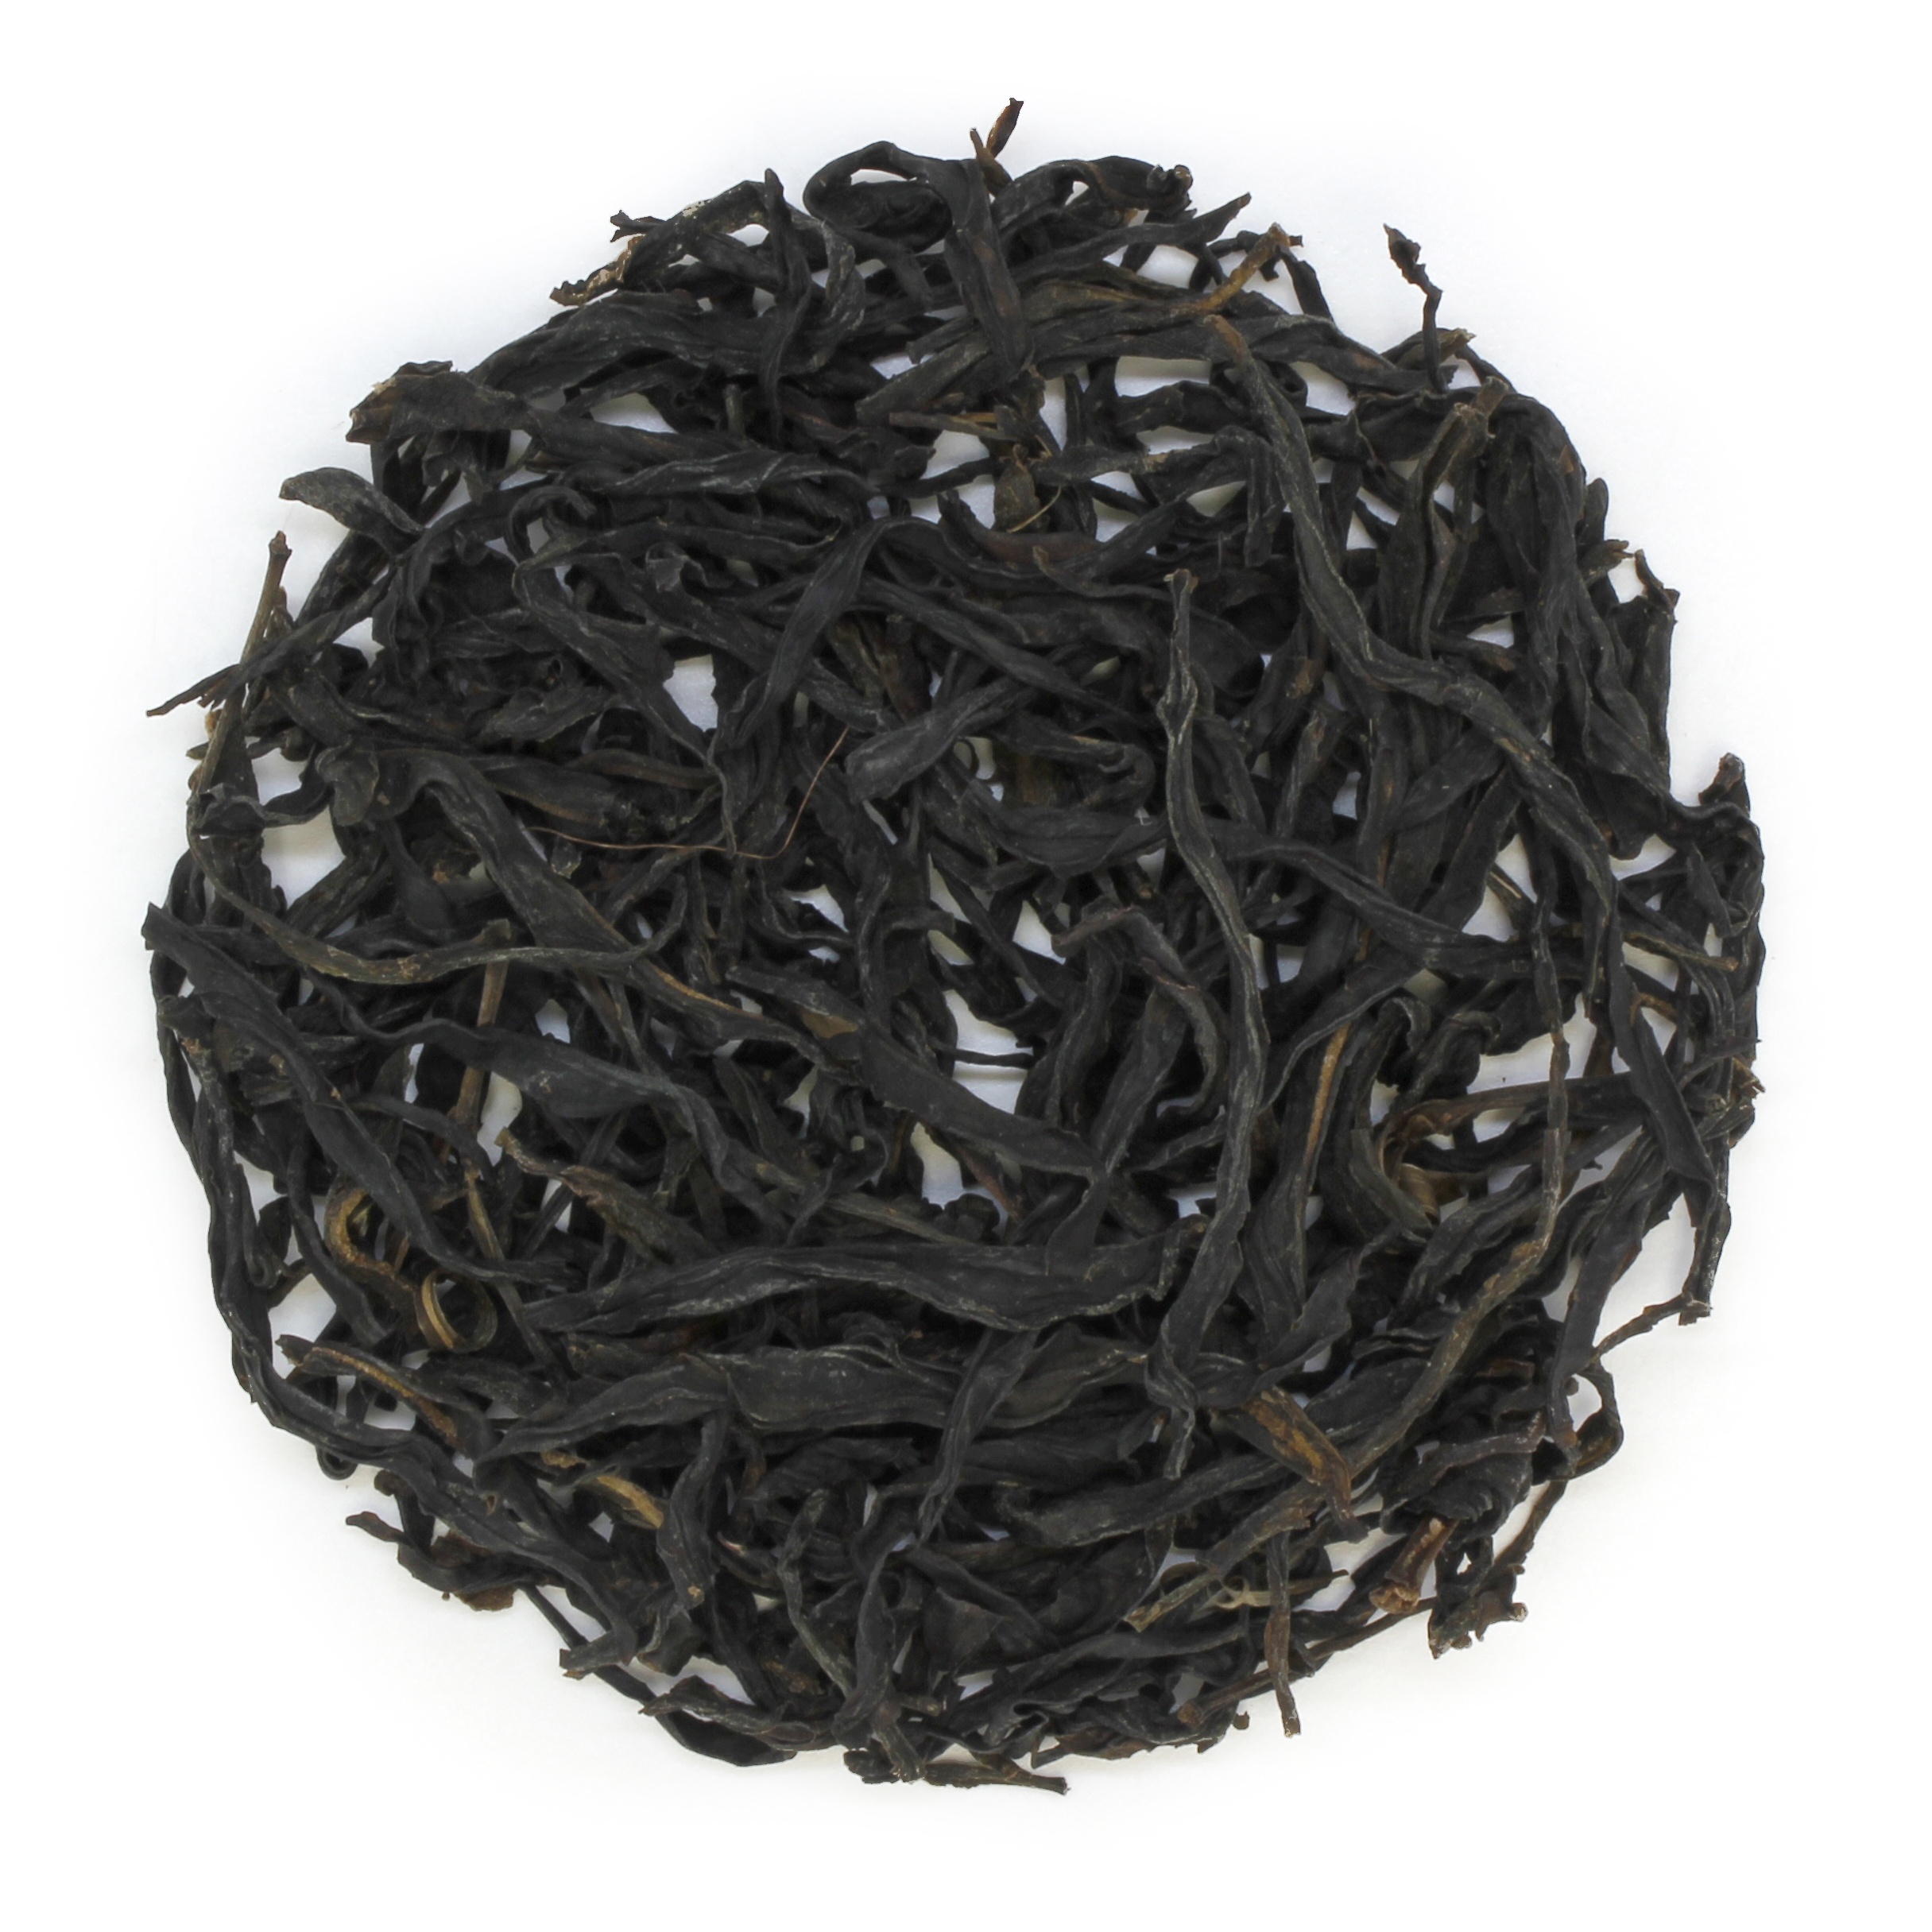 phoenix-single-trunk-oolong-tea-china.jpg